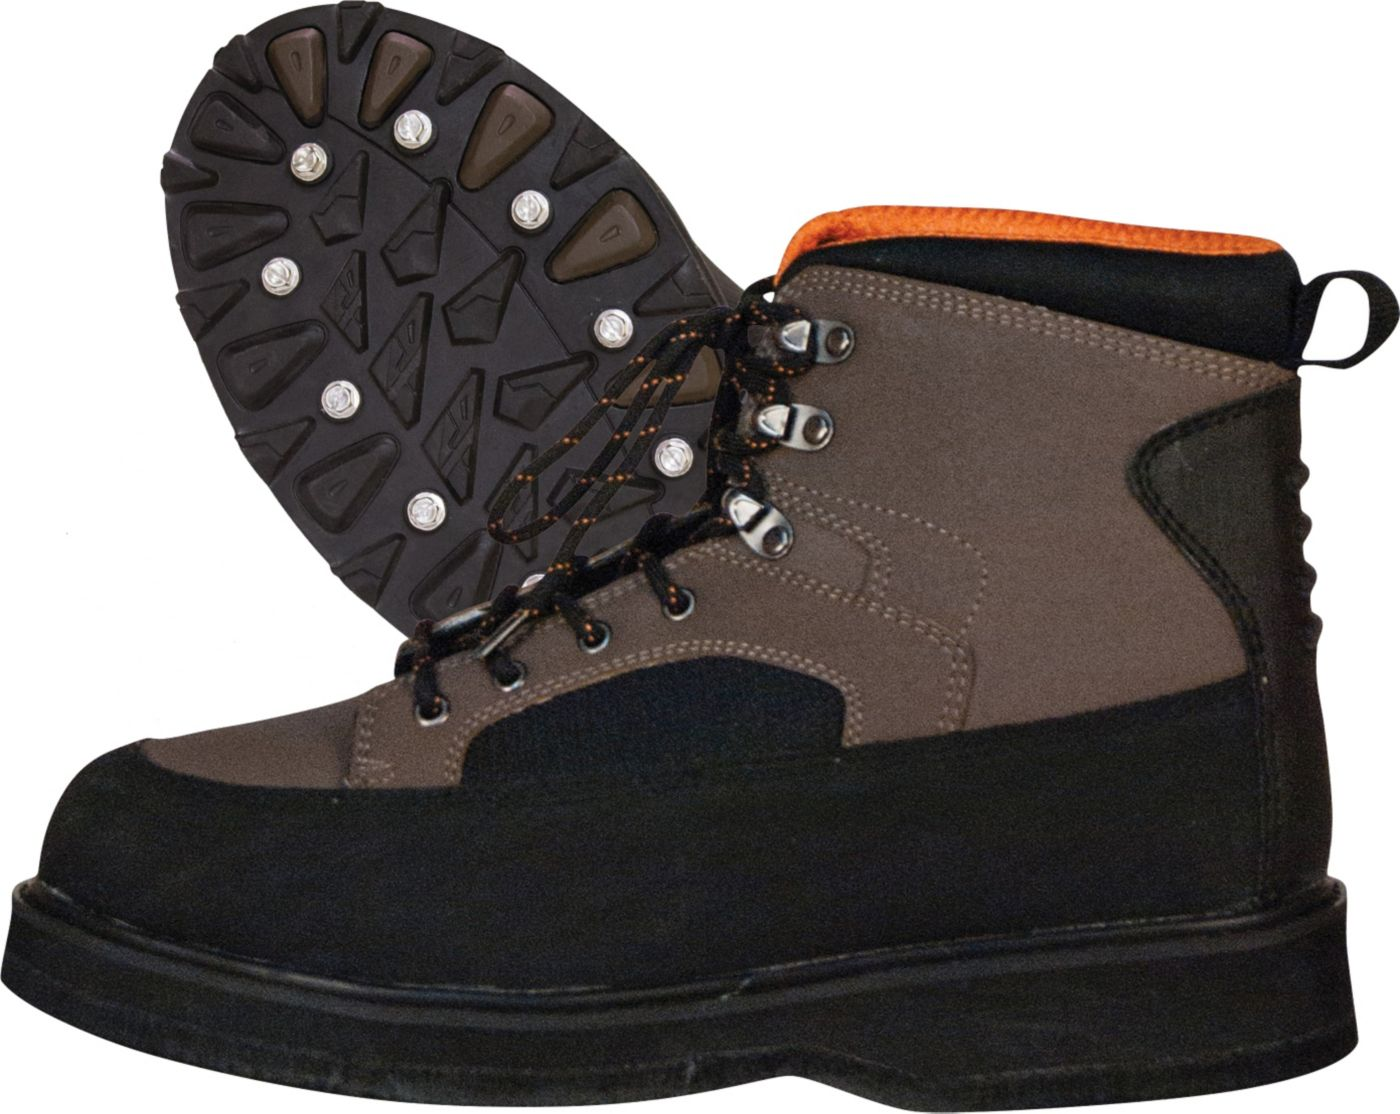 frogg toggs Amphib II Rubber Nonslip Wading Boots